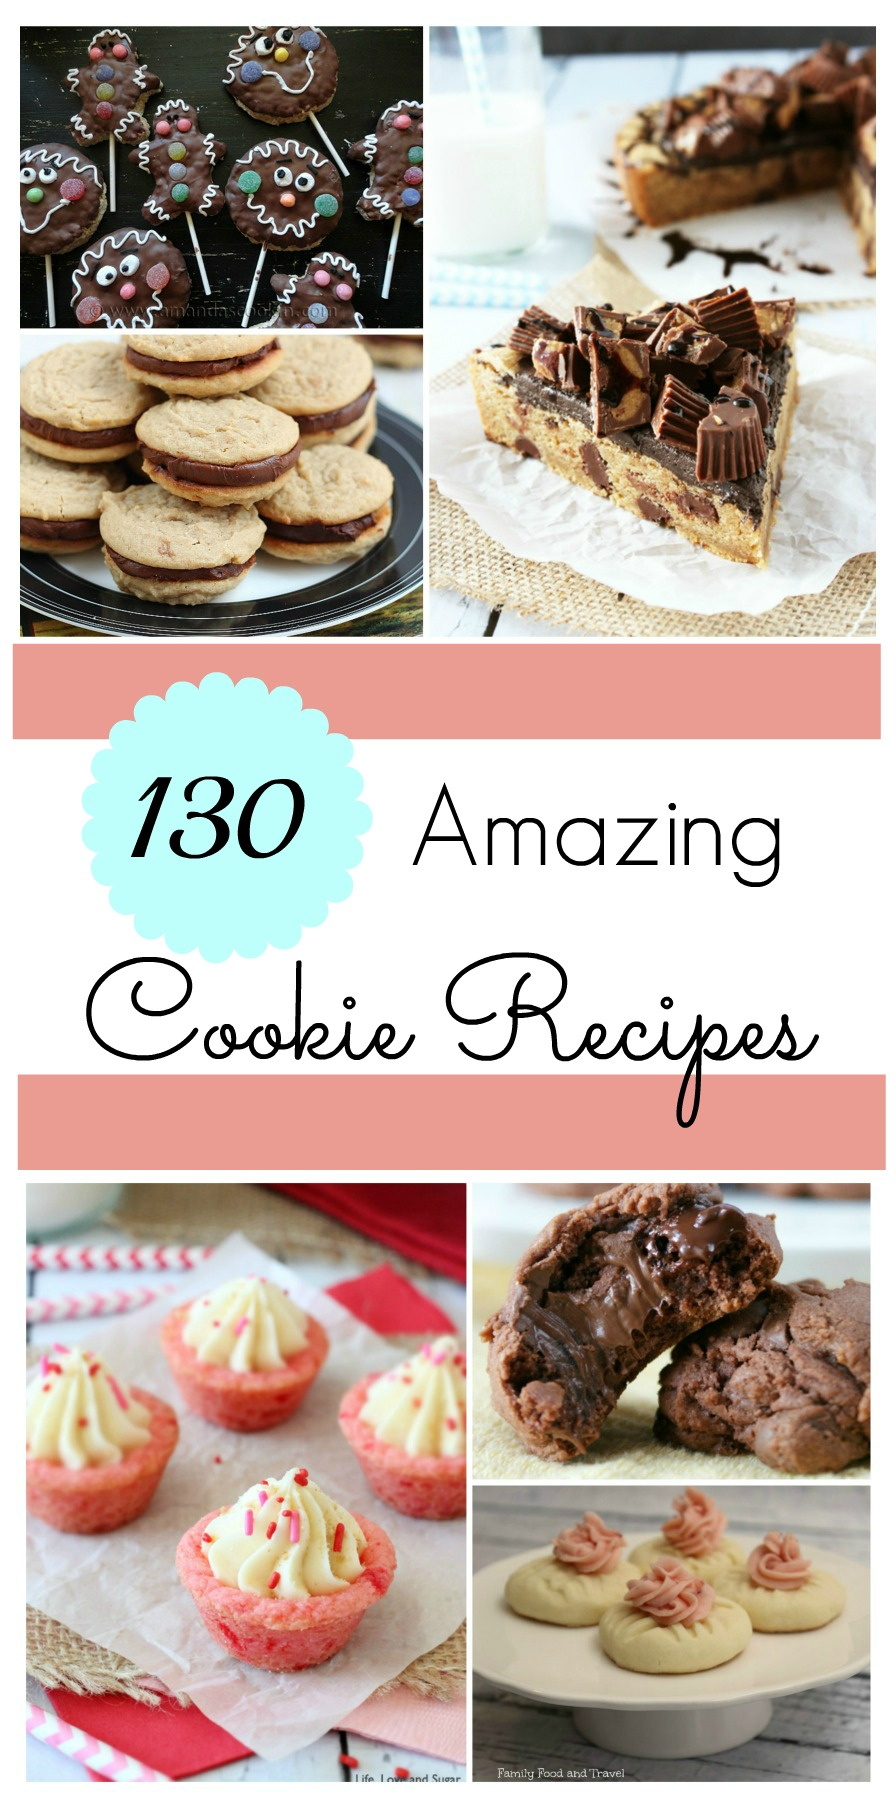 Looking for the perfect cookie recipe? Check out our list of 130 Amazing Cookie recipes (including pictures) here!